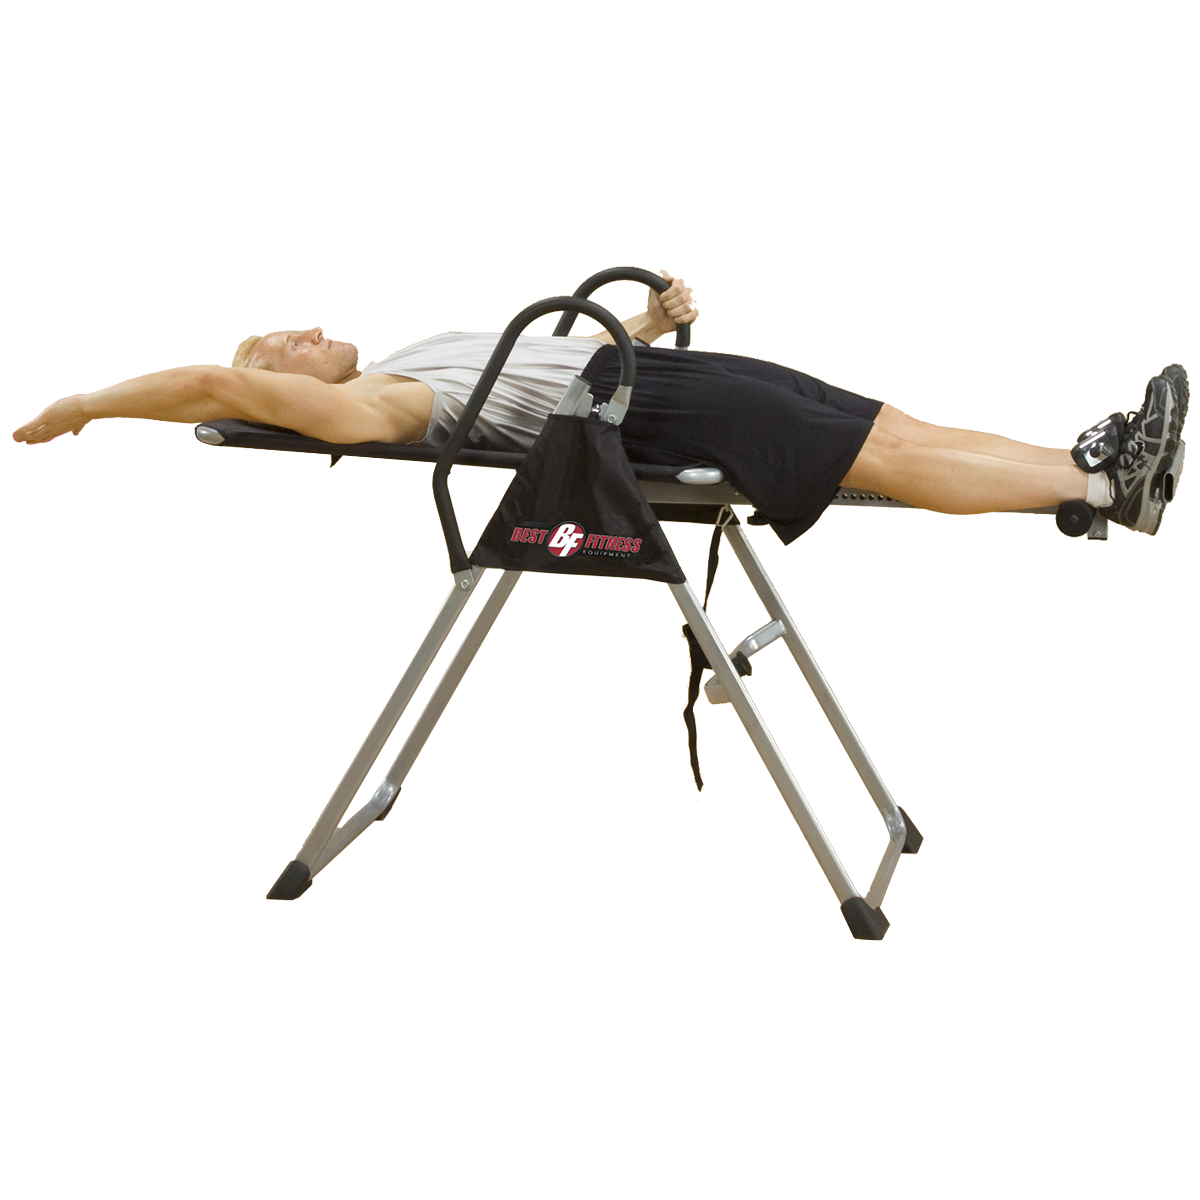 Best fitness inversion table bfinver10 incredibody for Table inversion